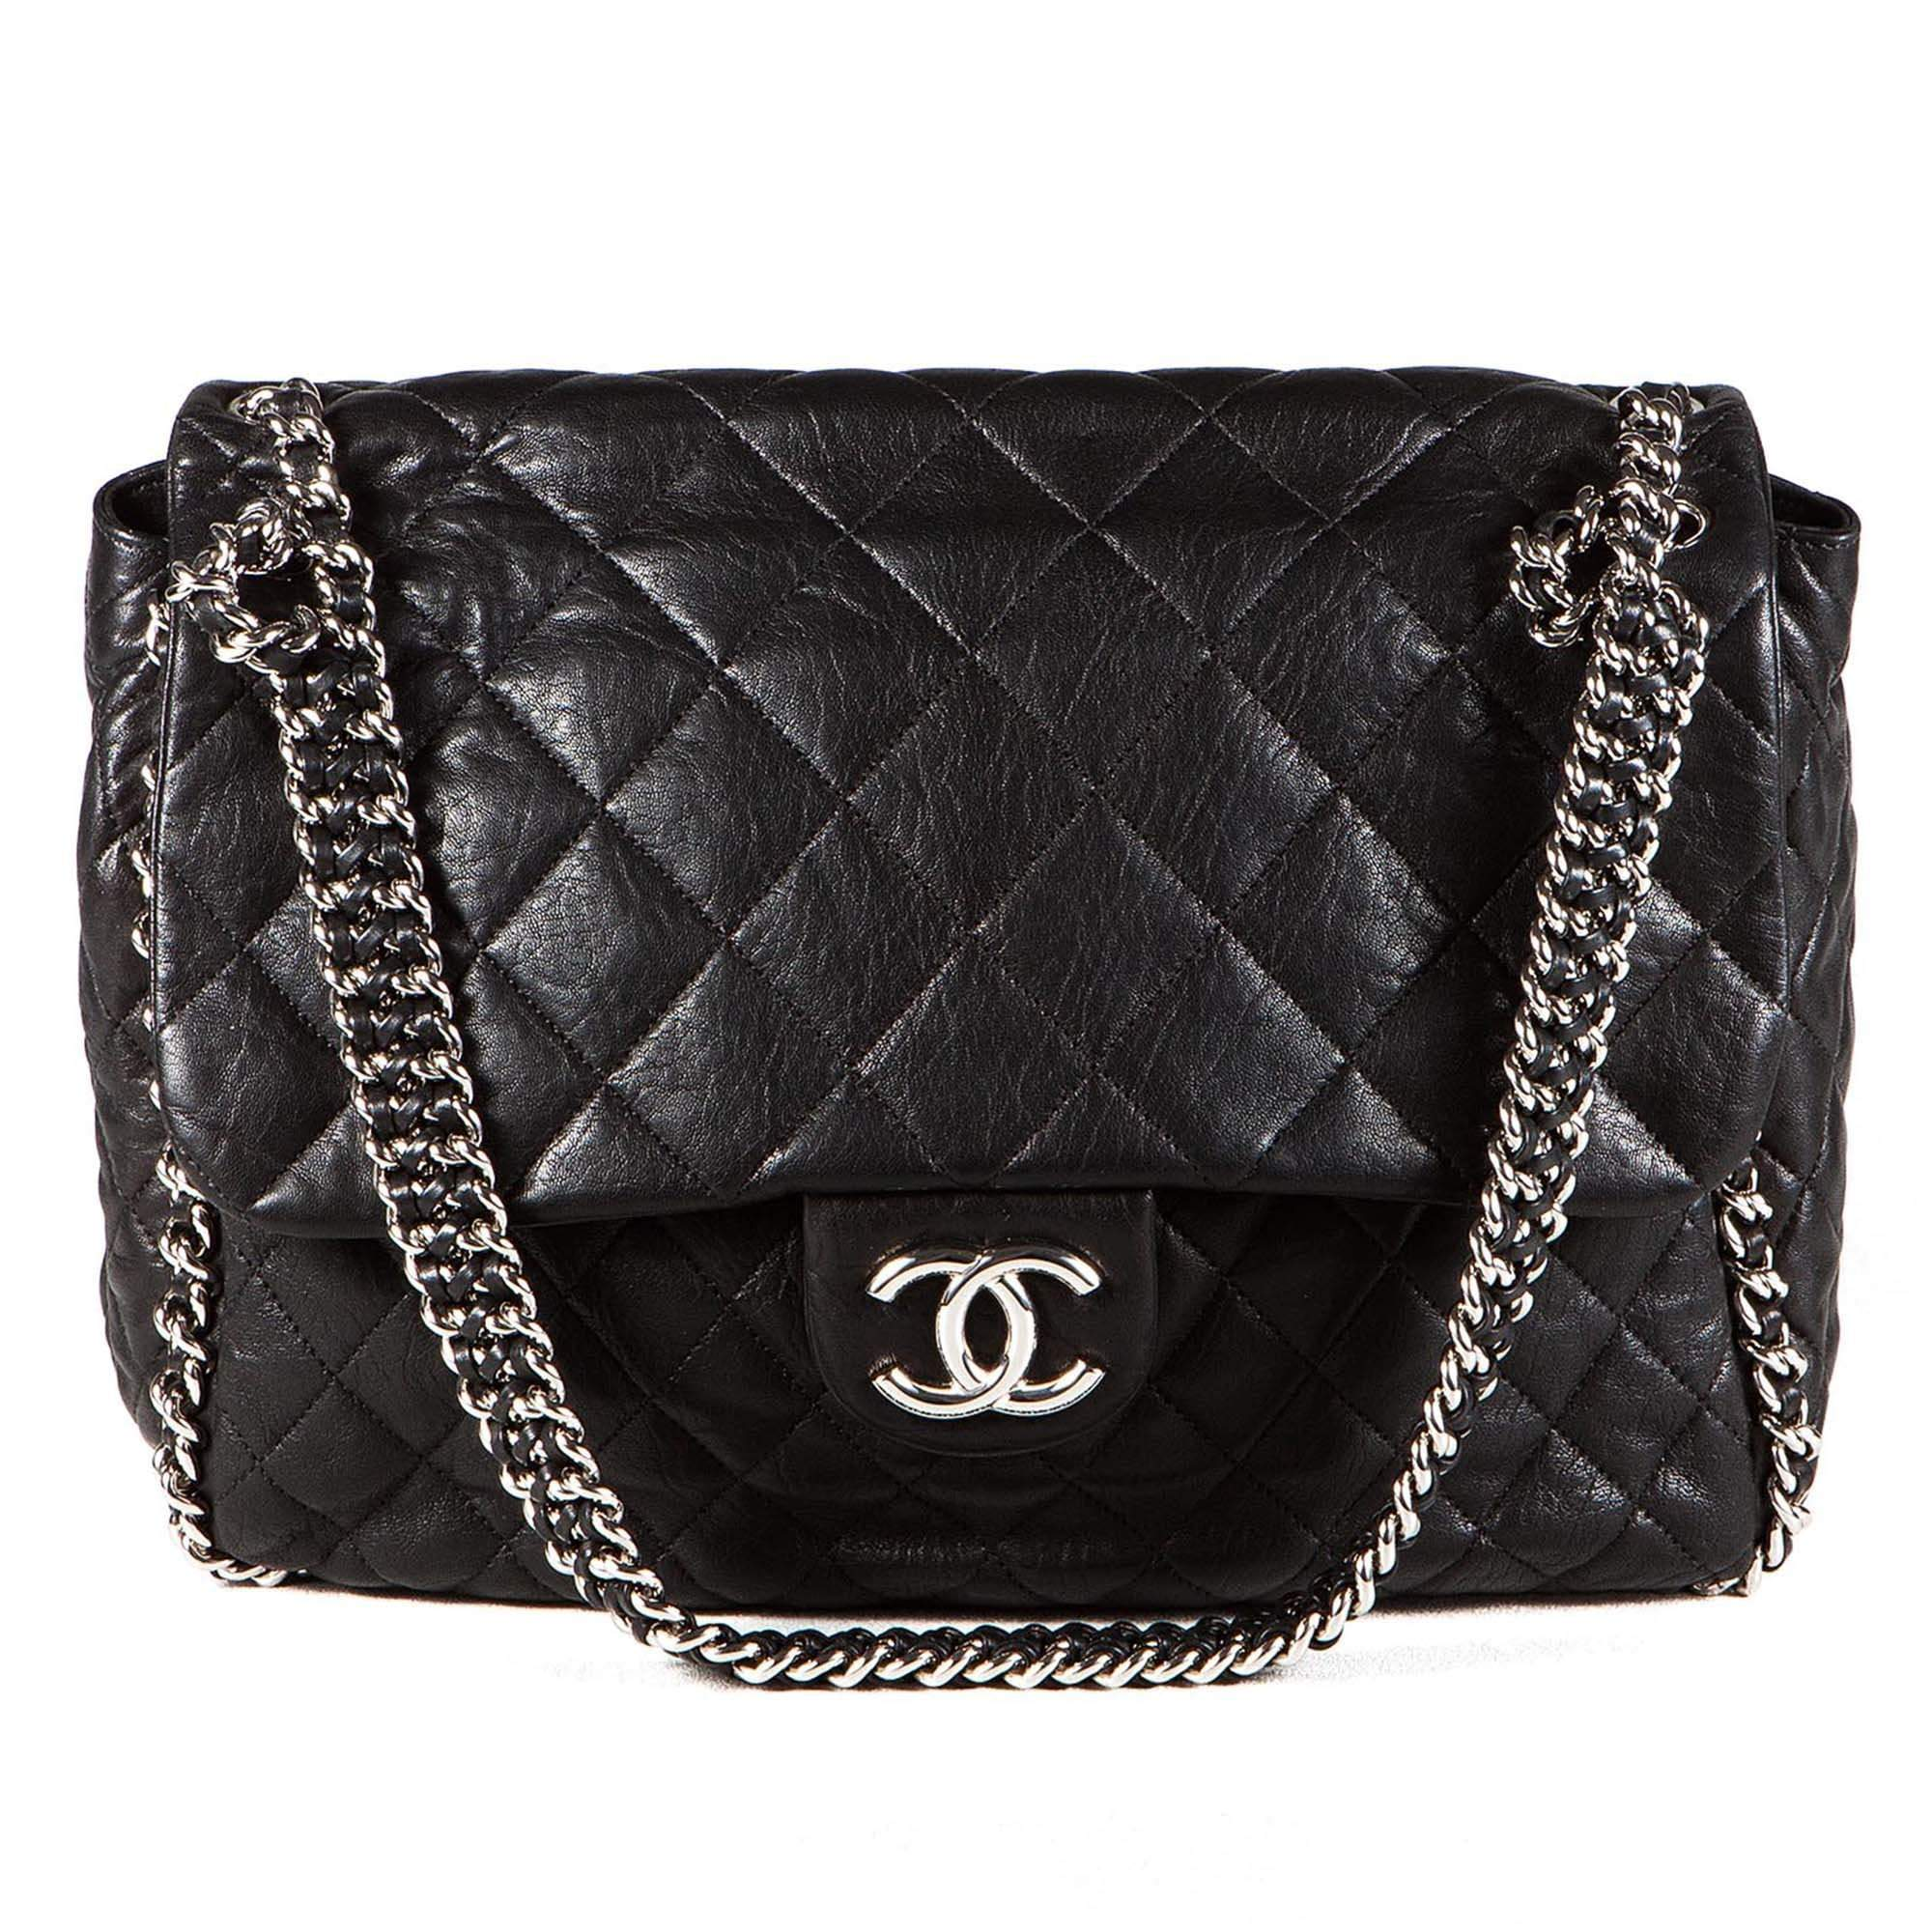 Chanel Maxi Chain Around Bag